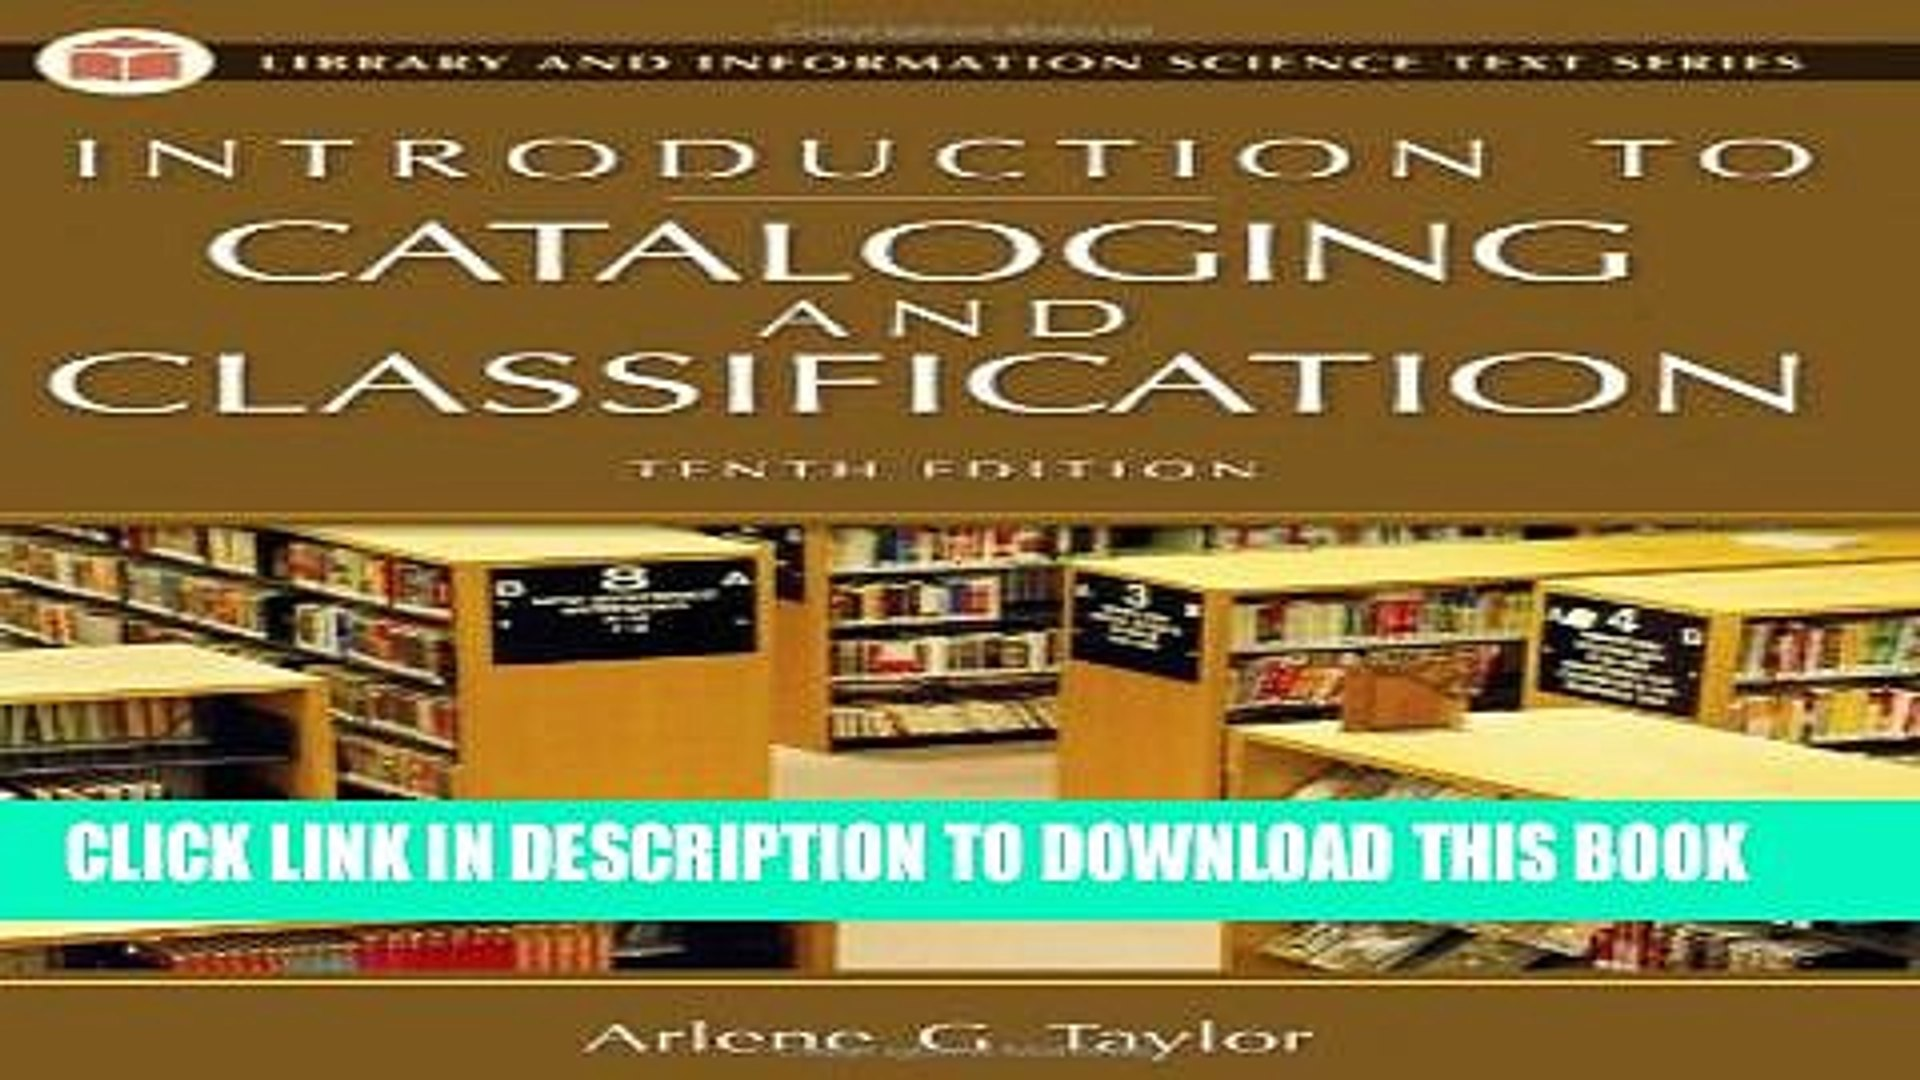 10th Edition Introduction to Cataloging and Classification